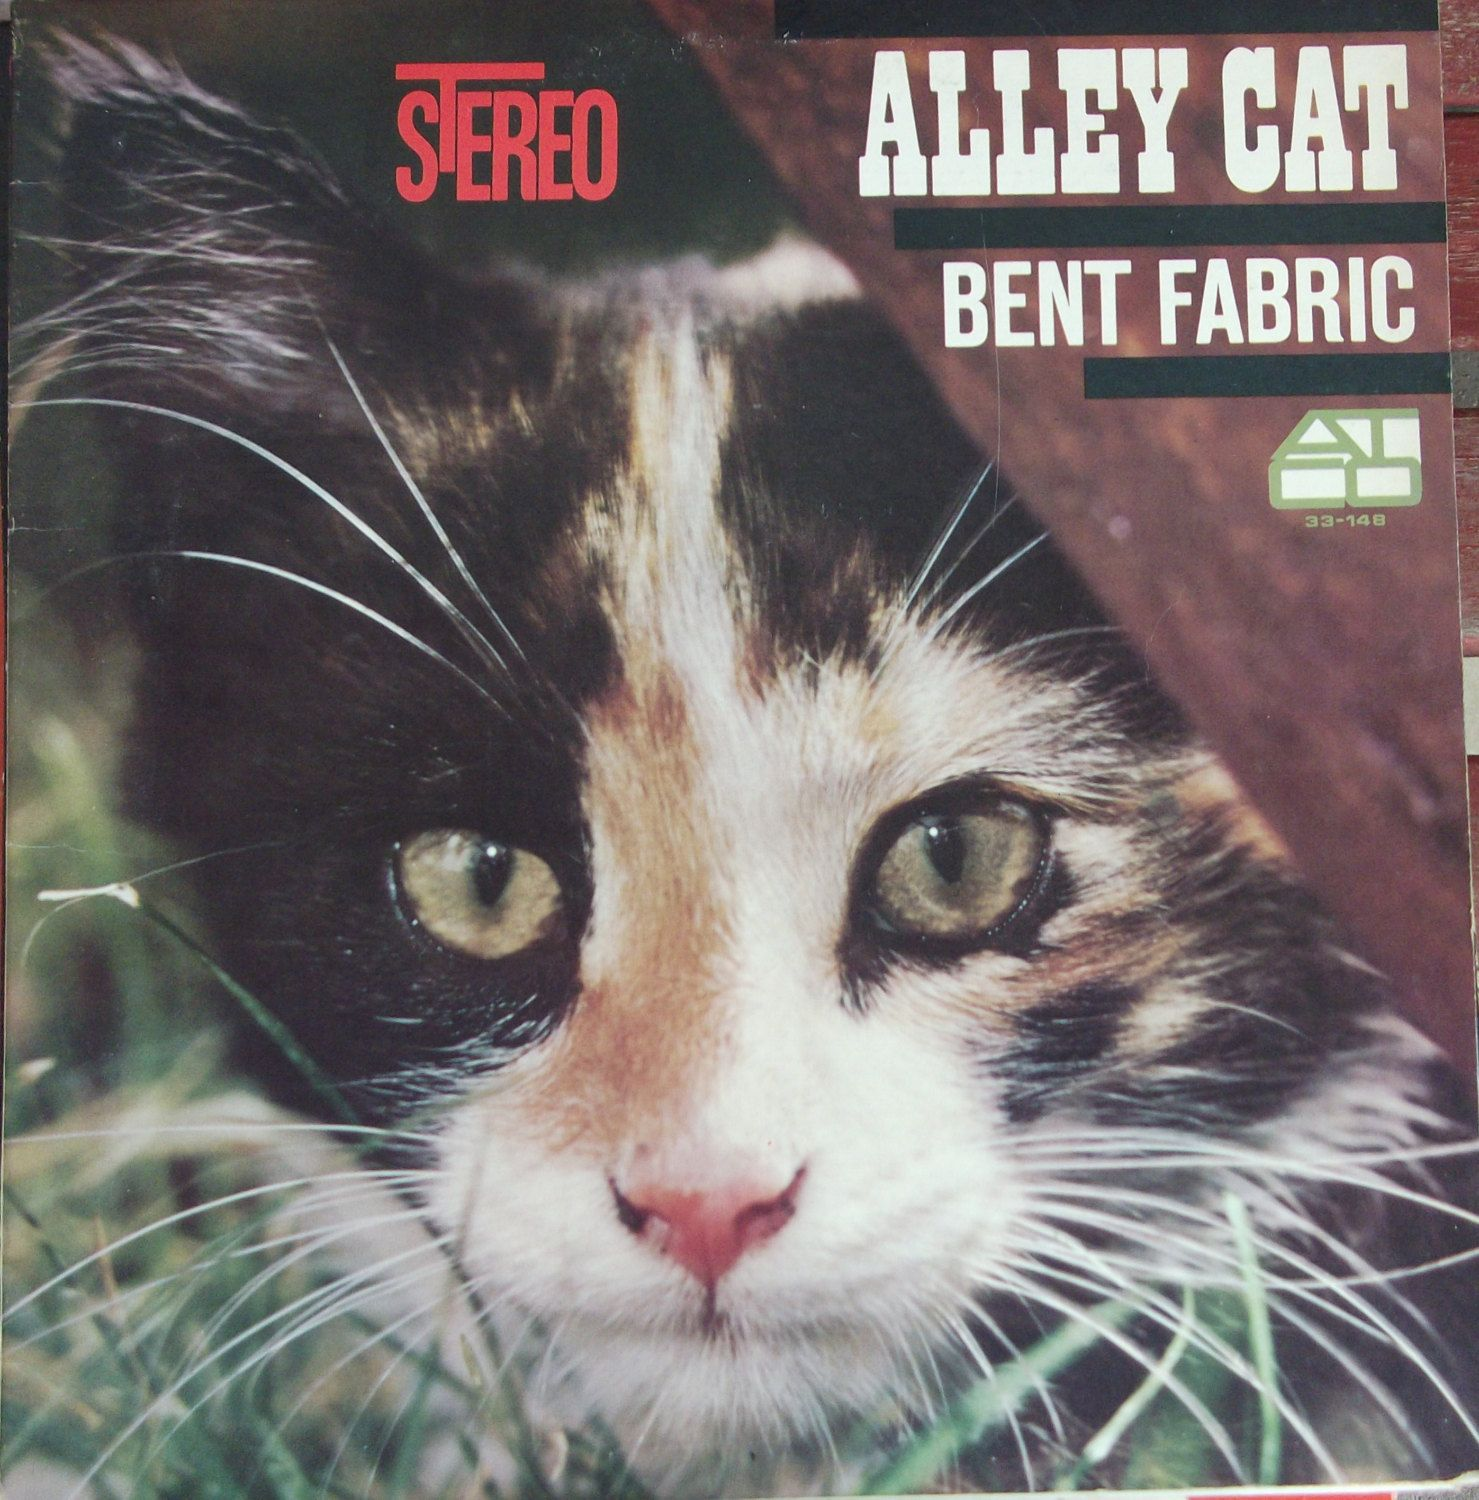 Alley Cat, Bent Fabric and His Piano, Vintage Record Album